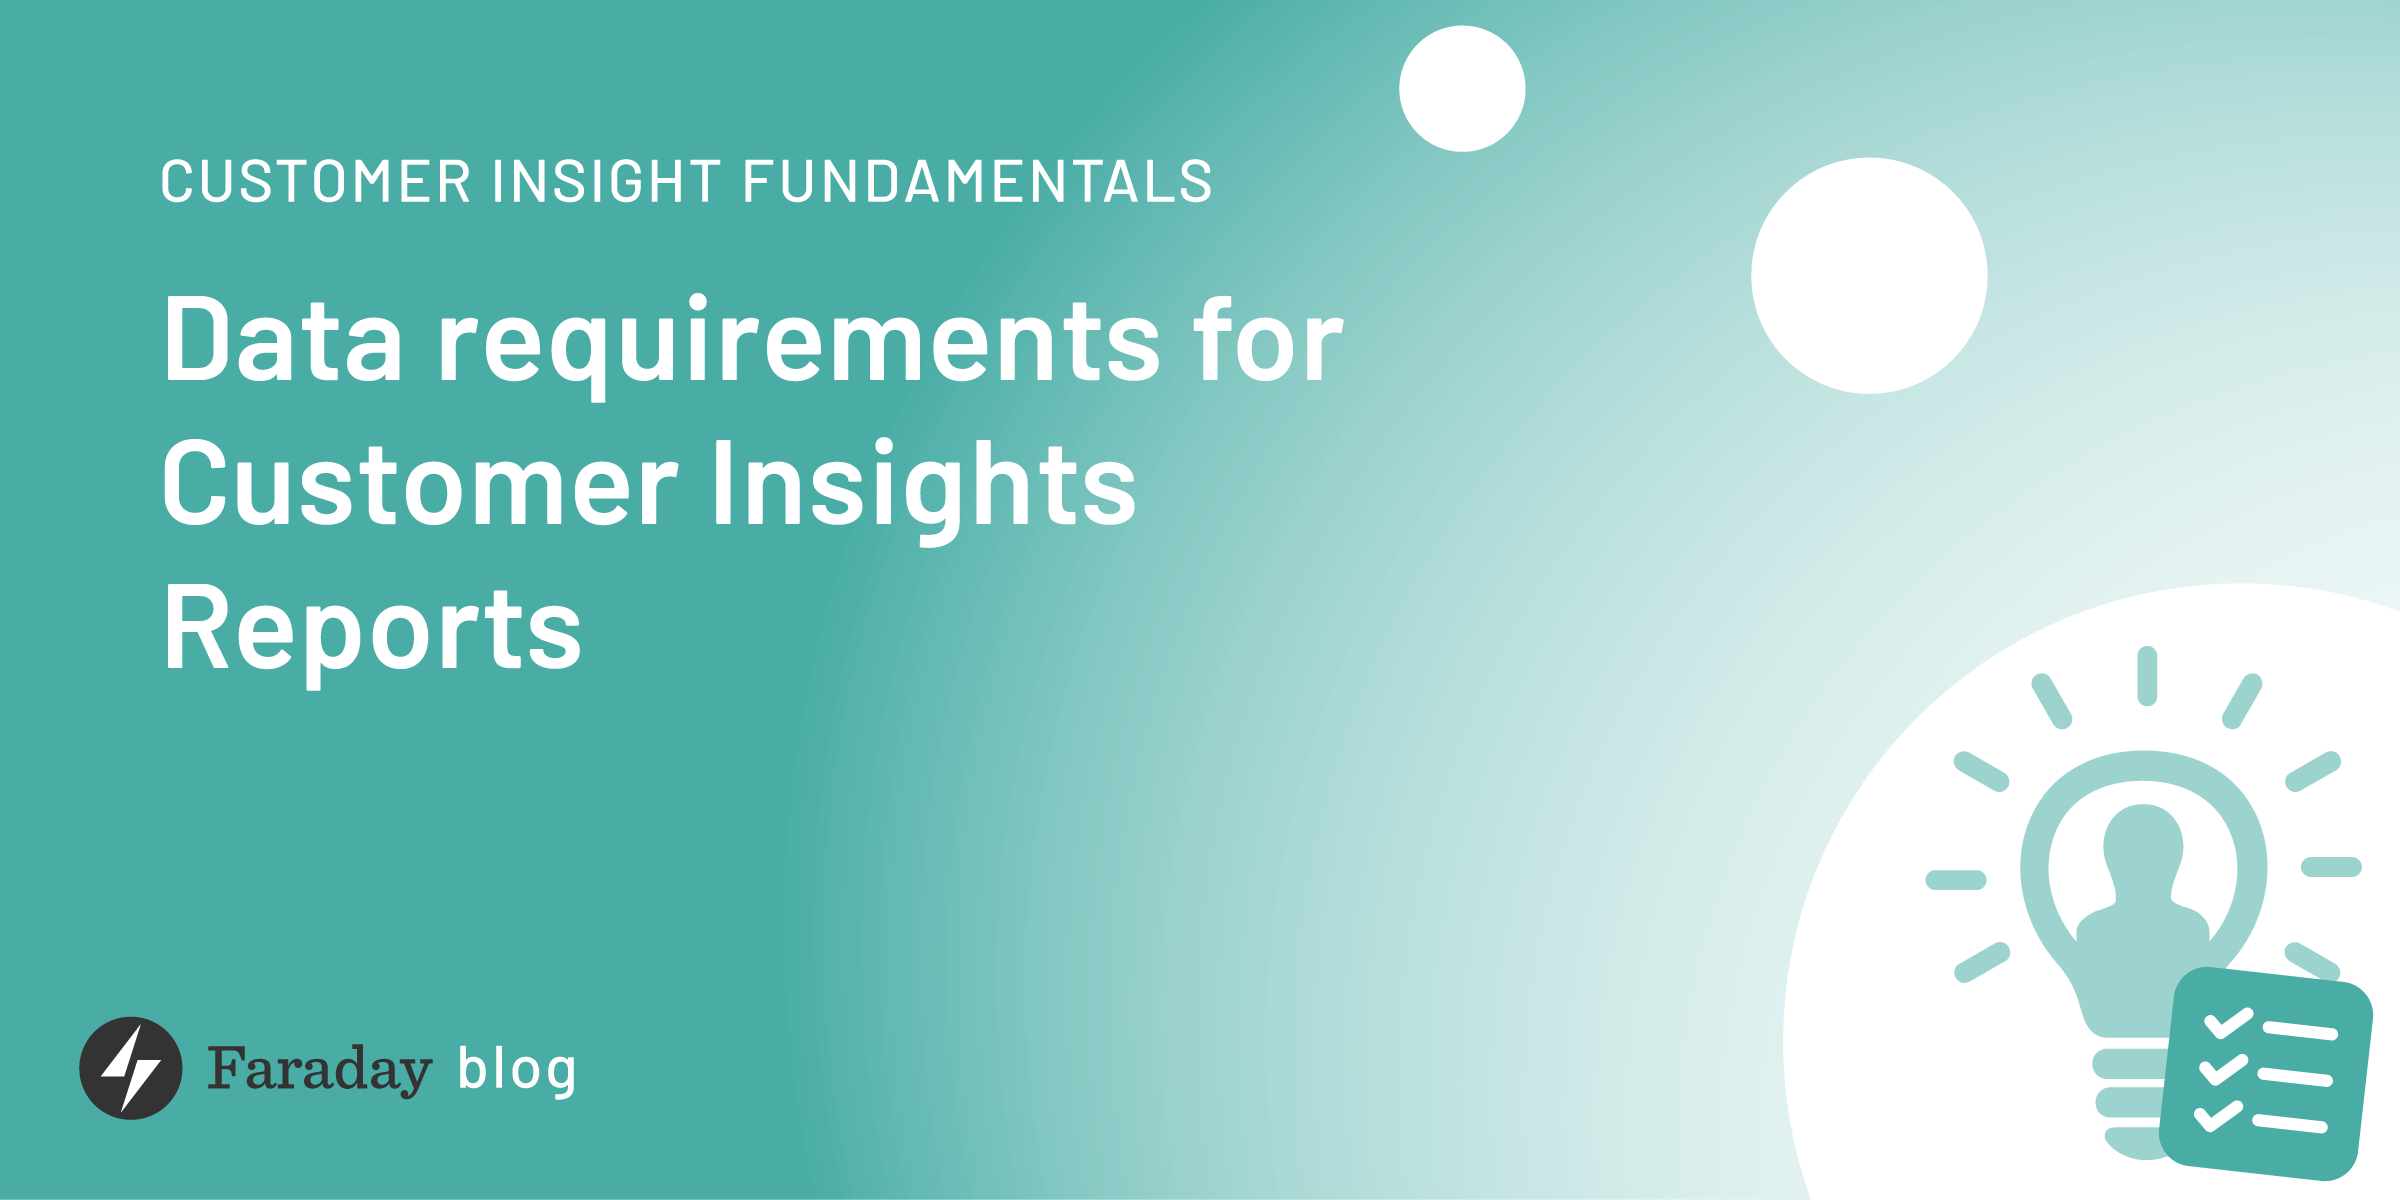 Customer insight fundamentals data requirements blog